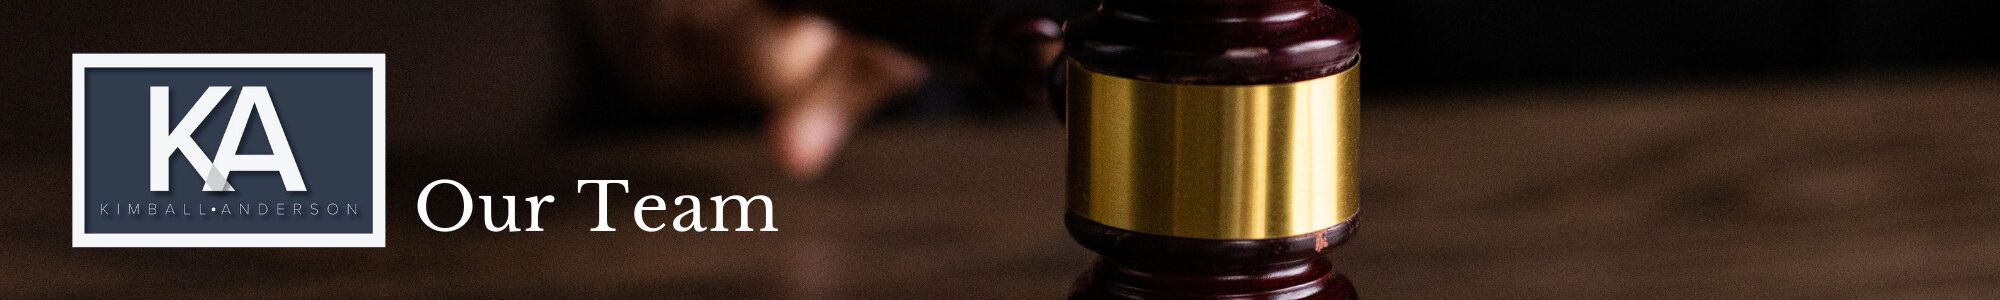 Header for the section containing our team of attorneys.